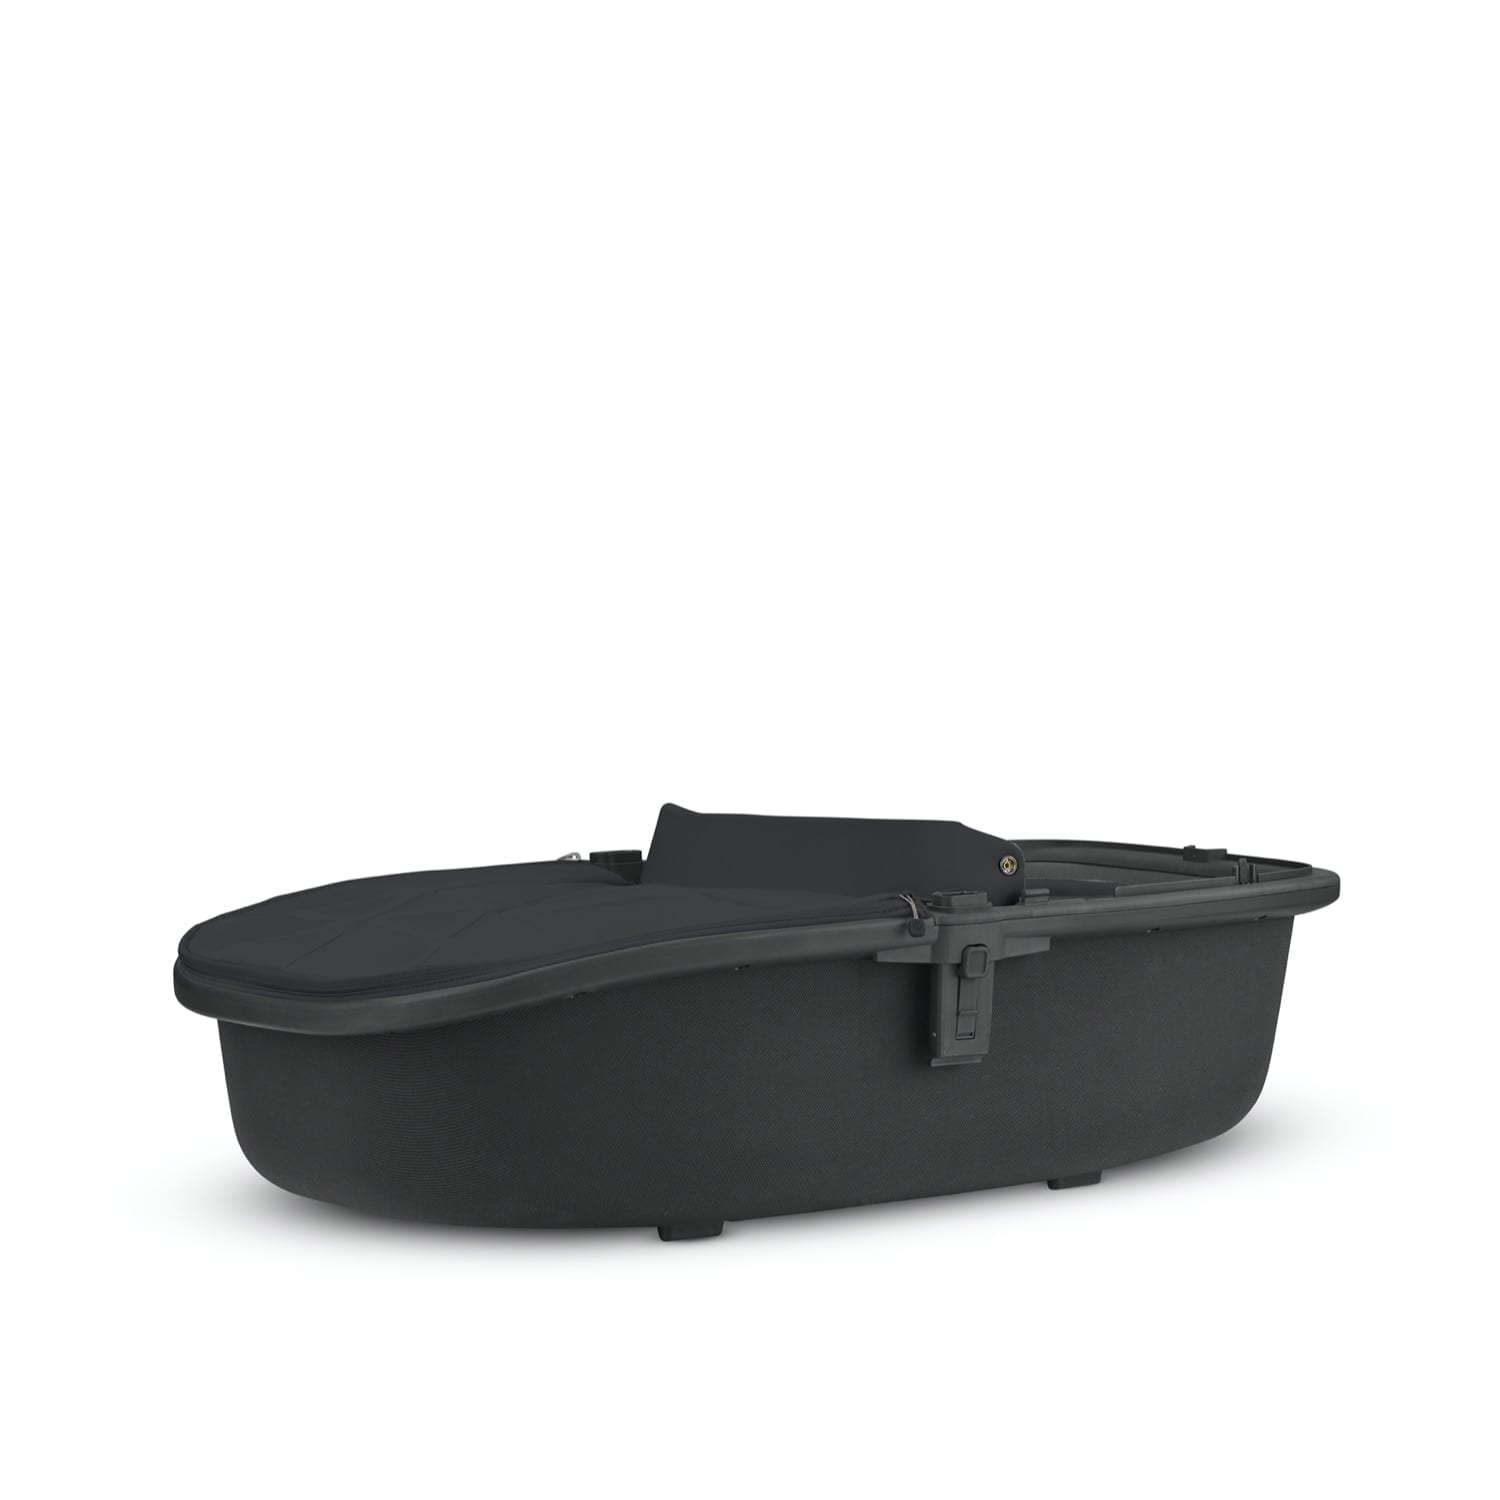 Quinny Hux Carrycot- Black on Black product image